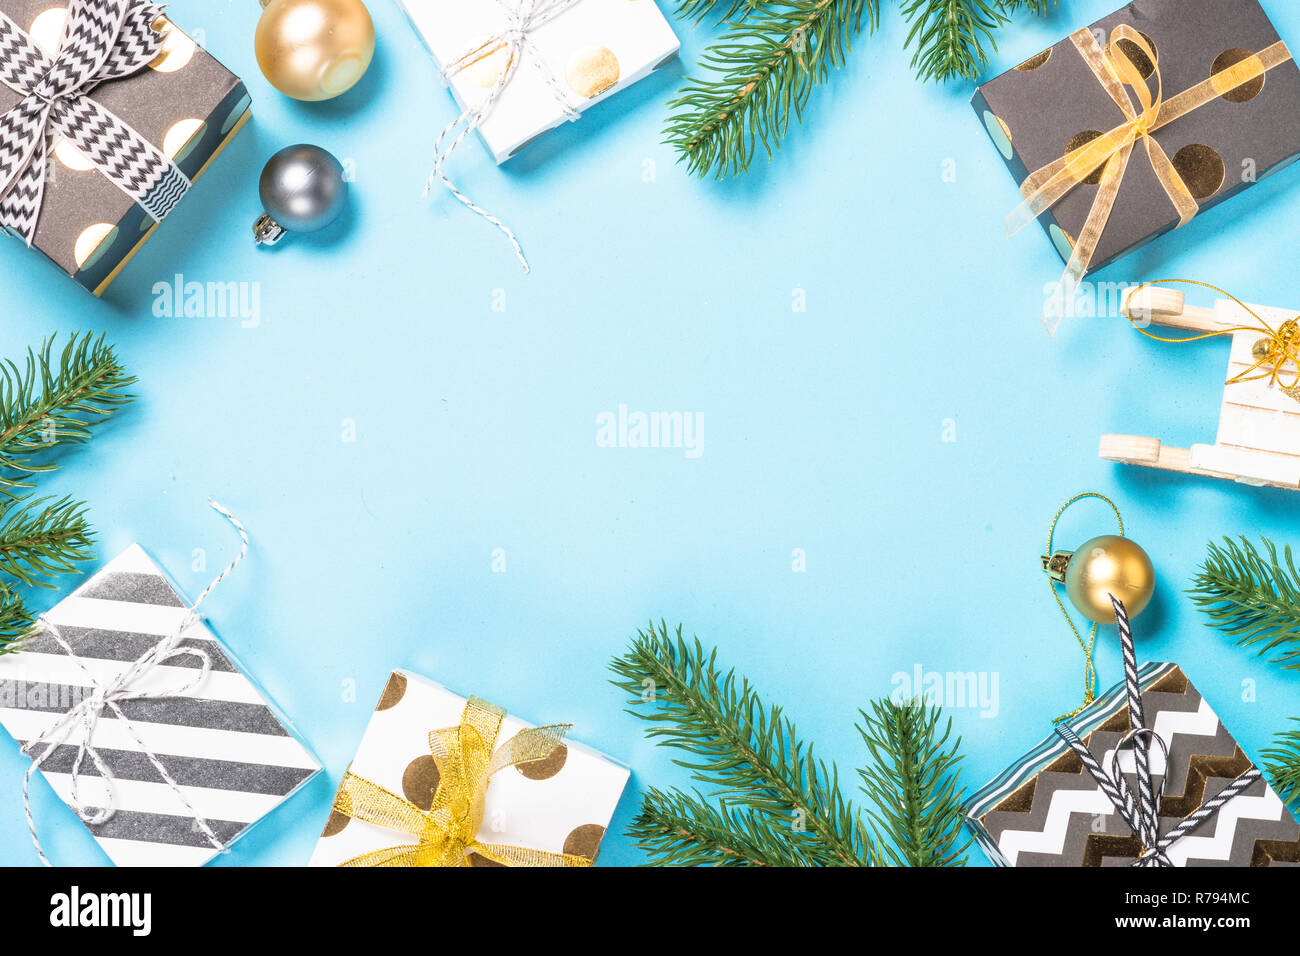 Christmas flatlay background - fir tree and decorations on blue  - Stock Image